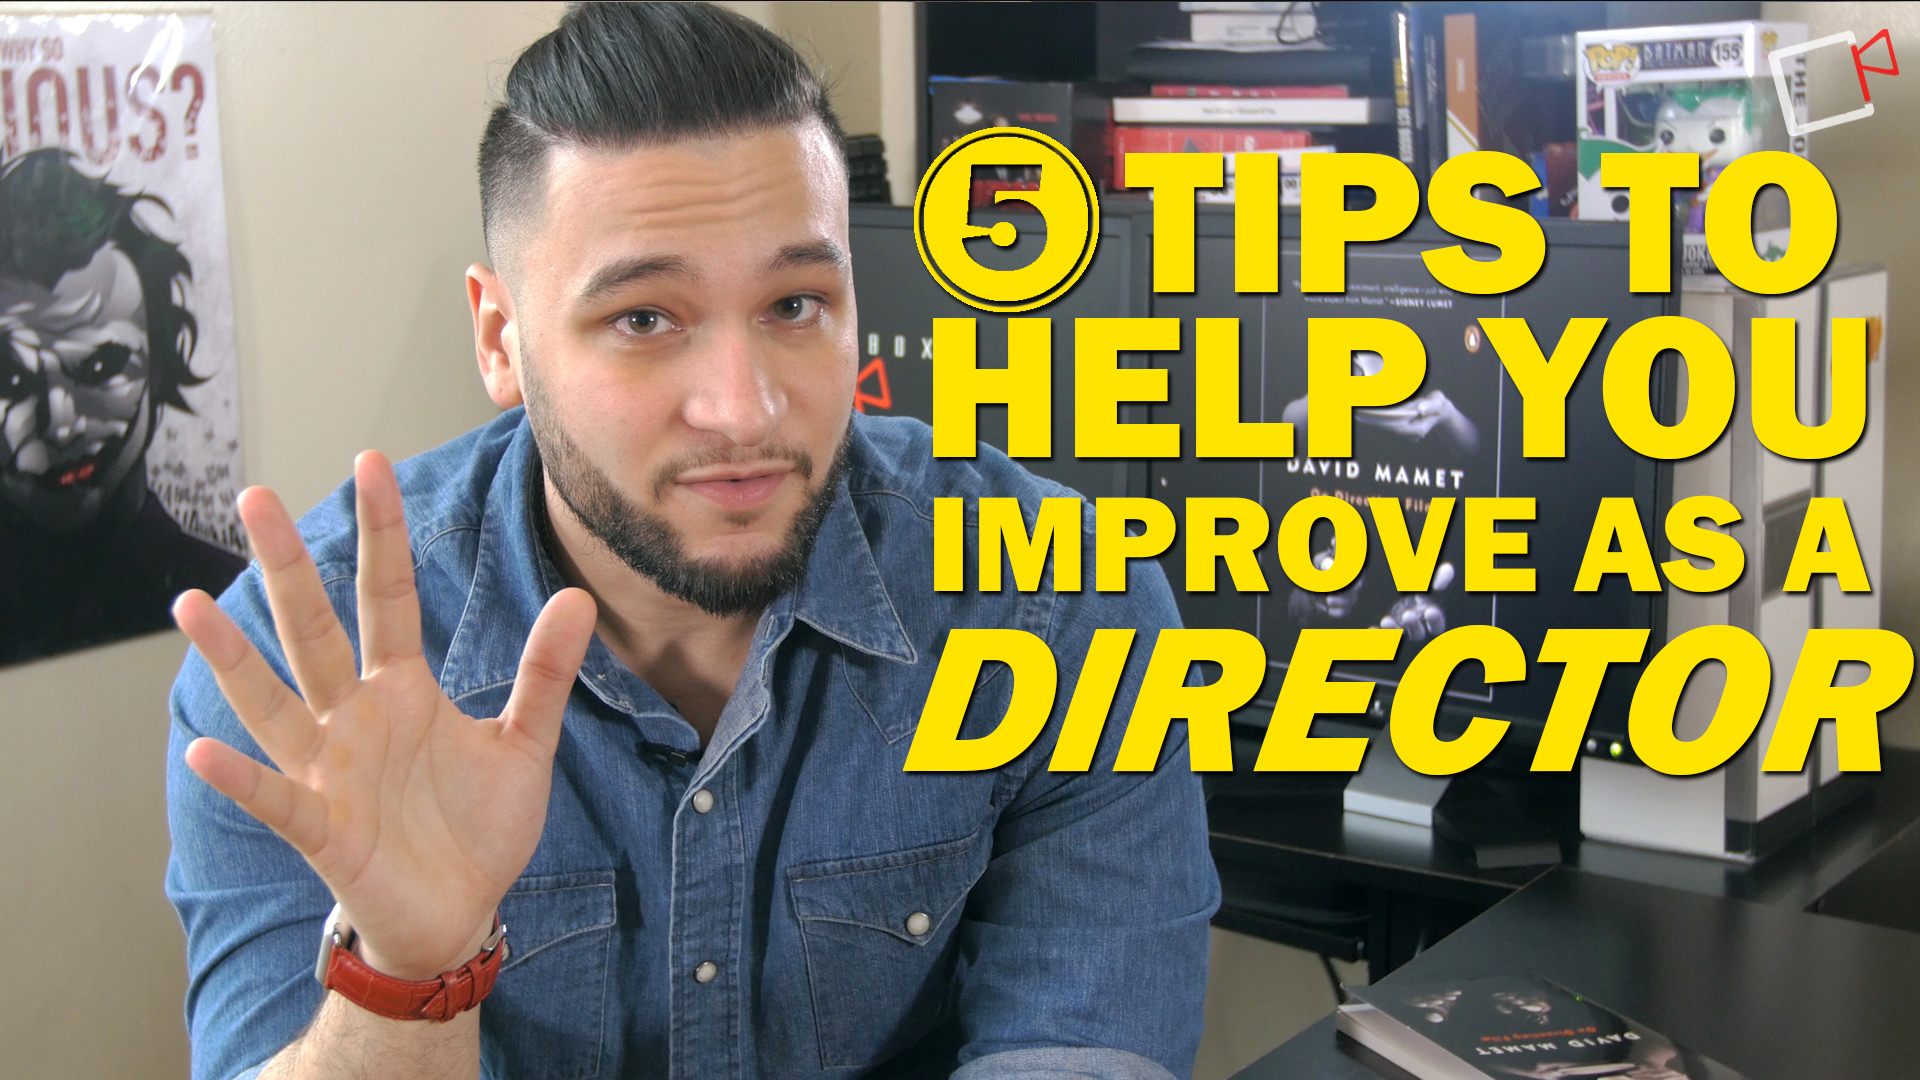 5 tips to help you imporve as a director